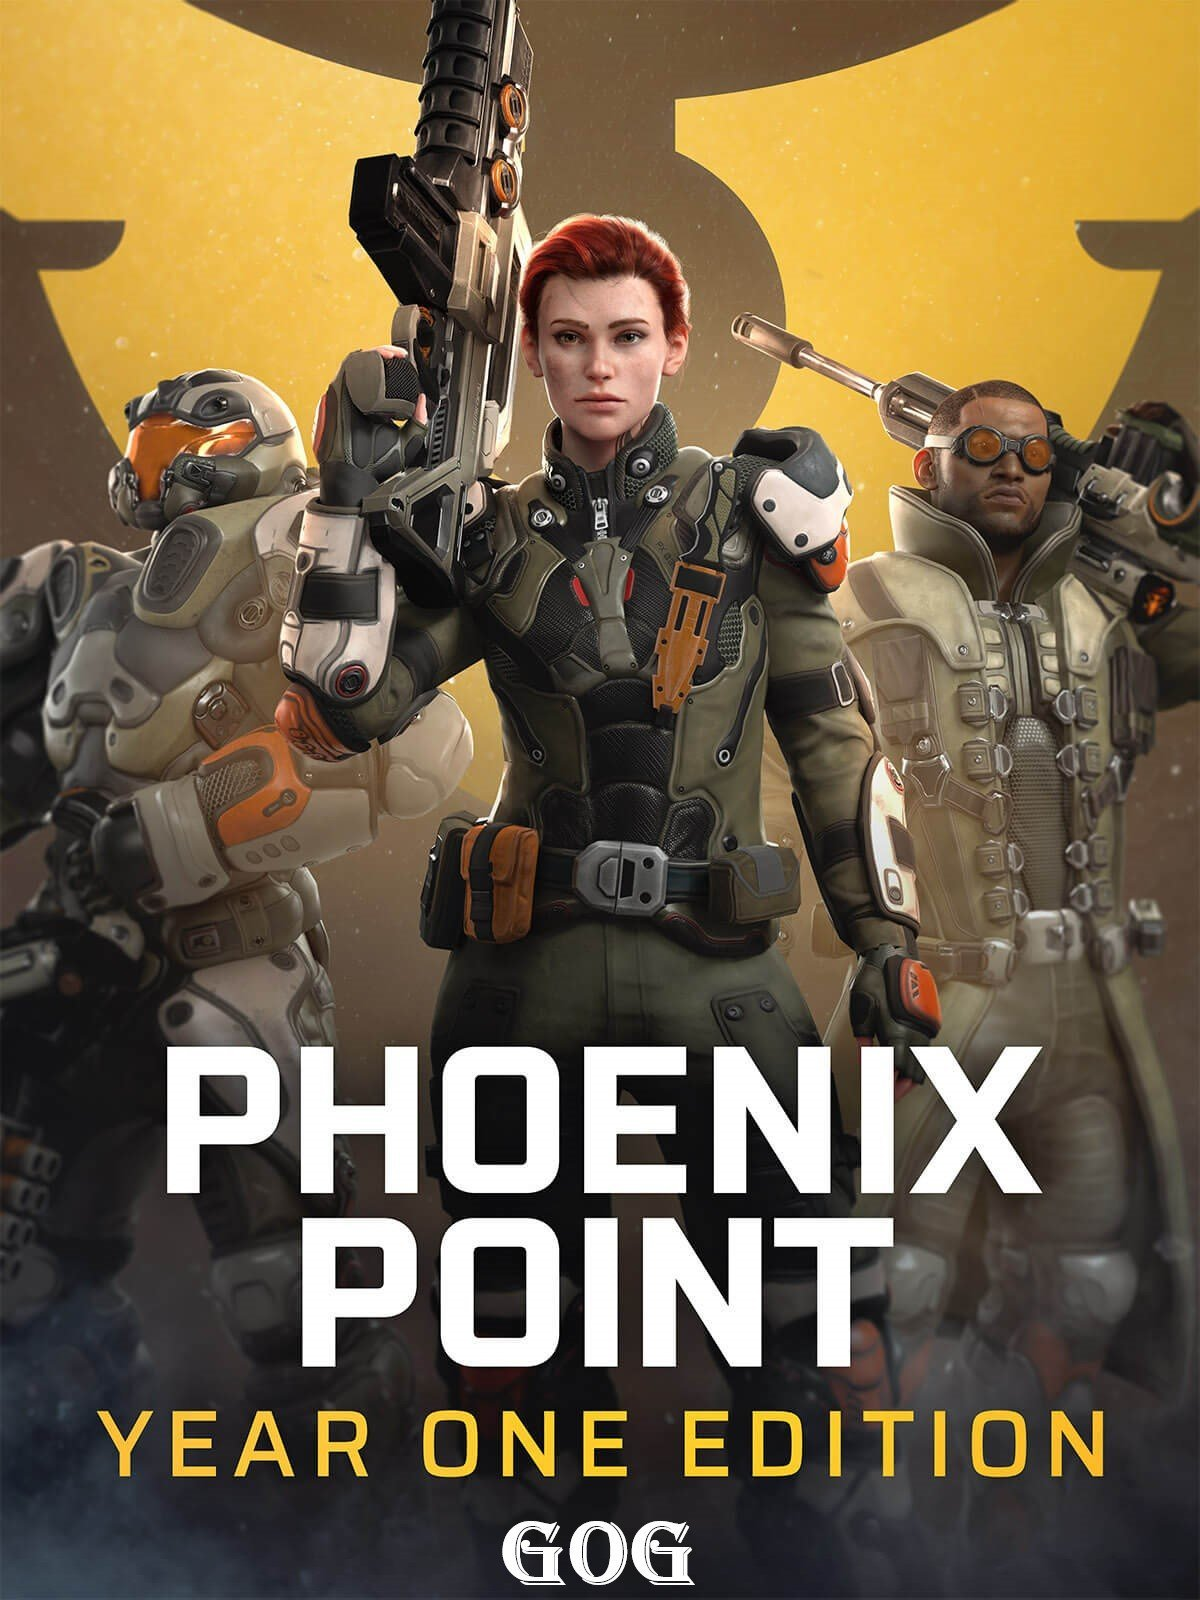 Phoenix Point: Year One Edition v.1.10 [GOG] (2019) Лицензия